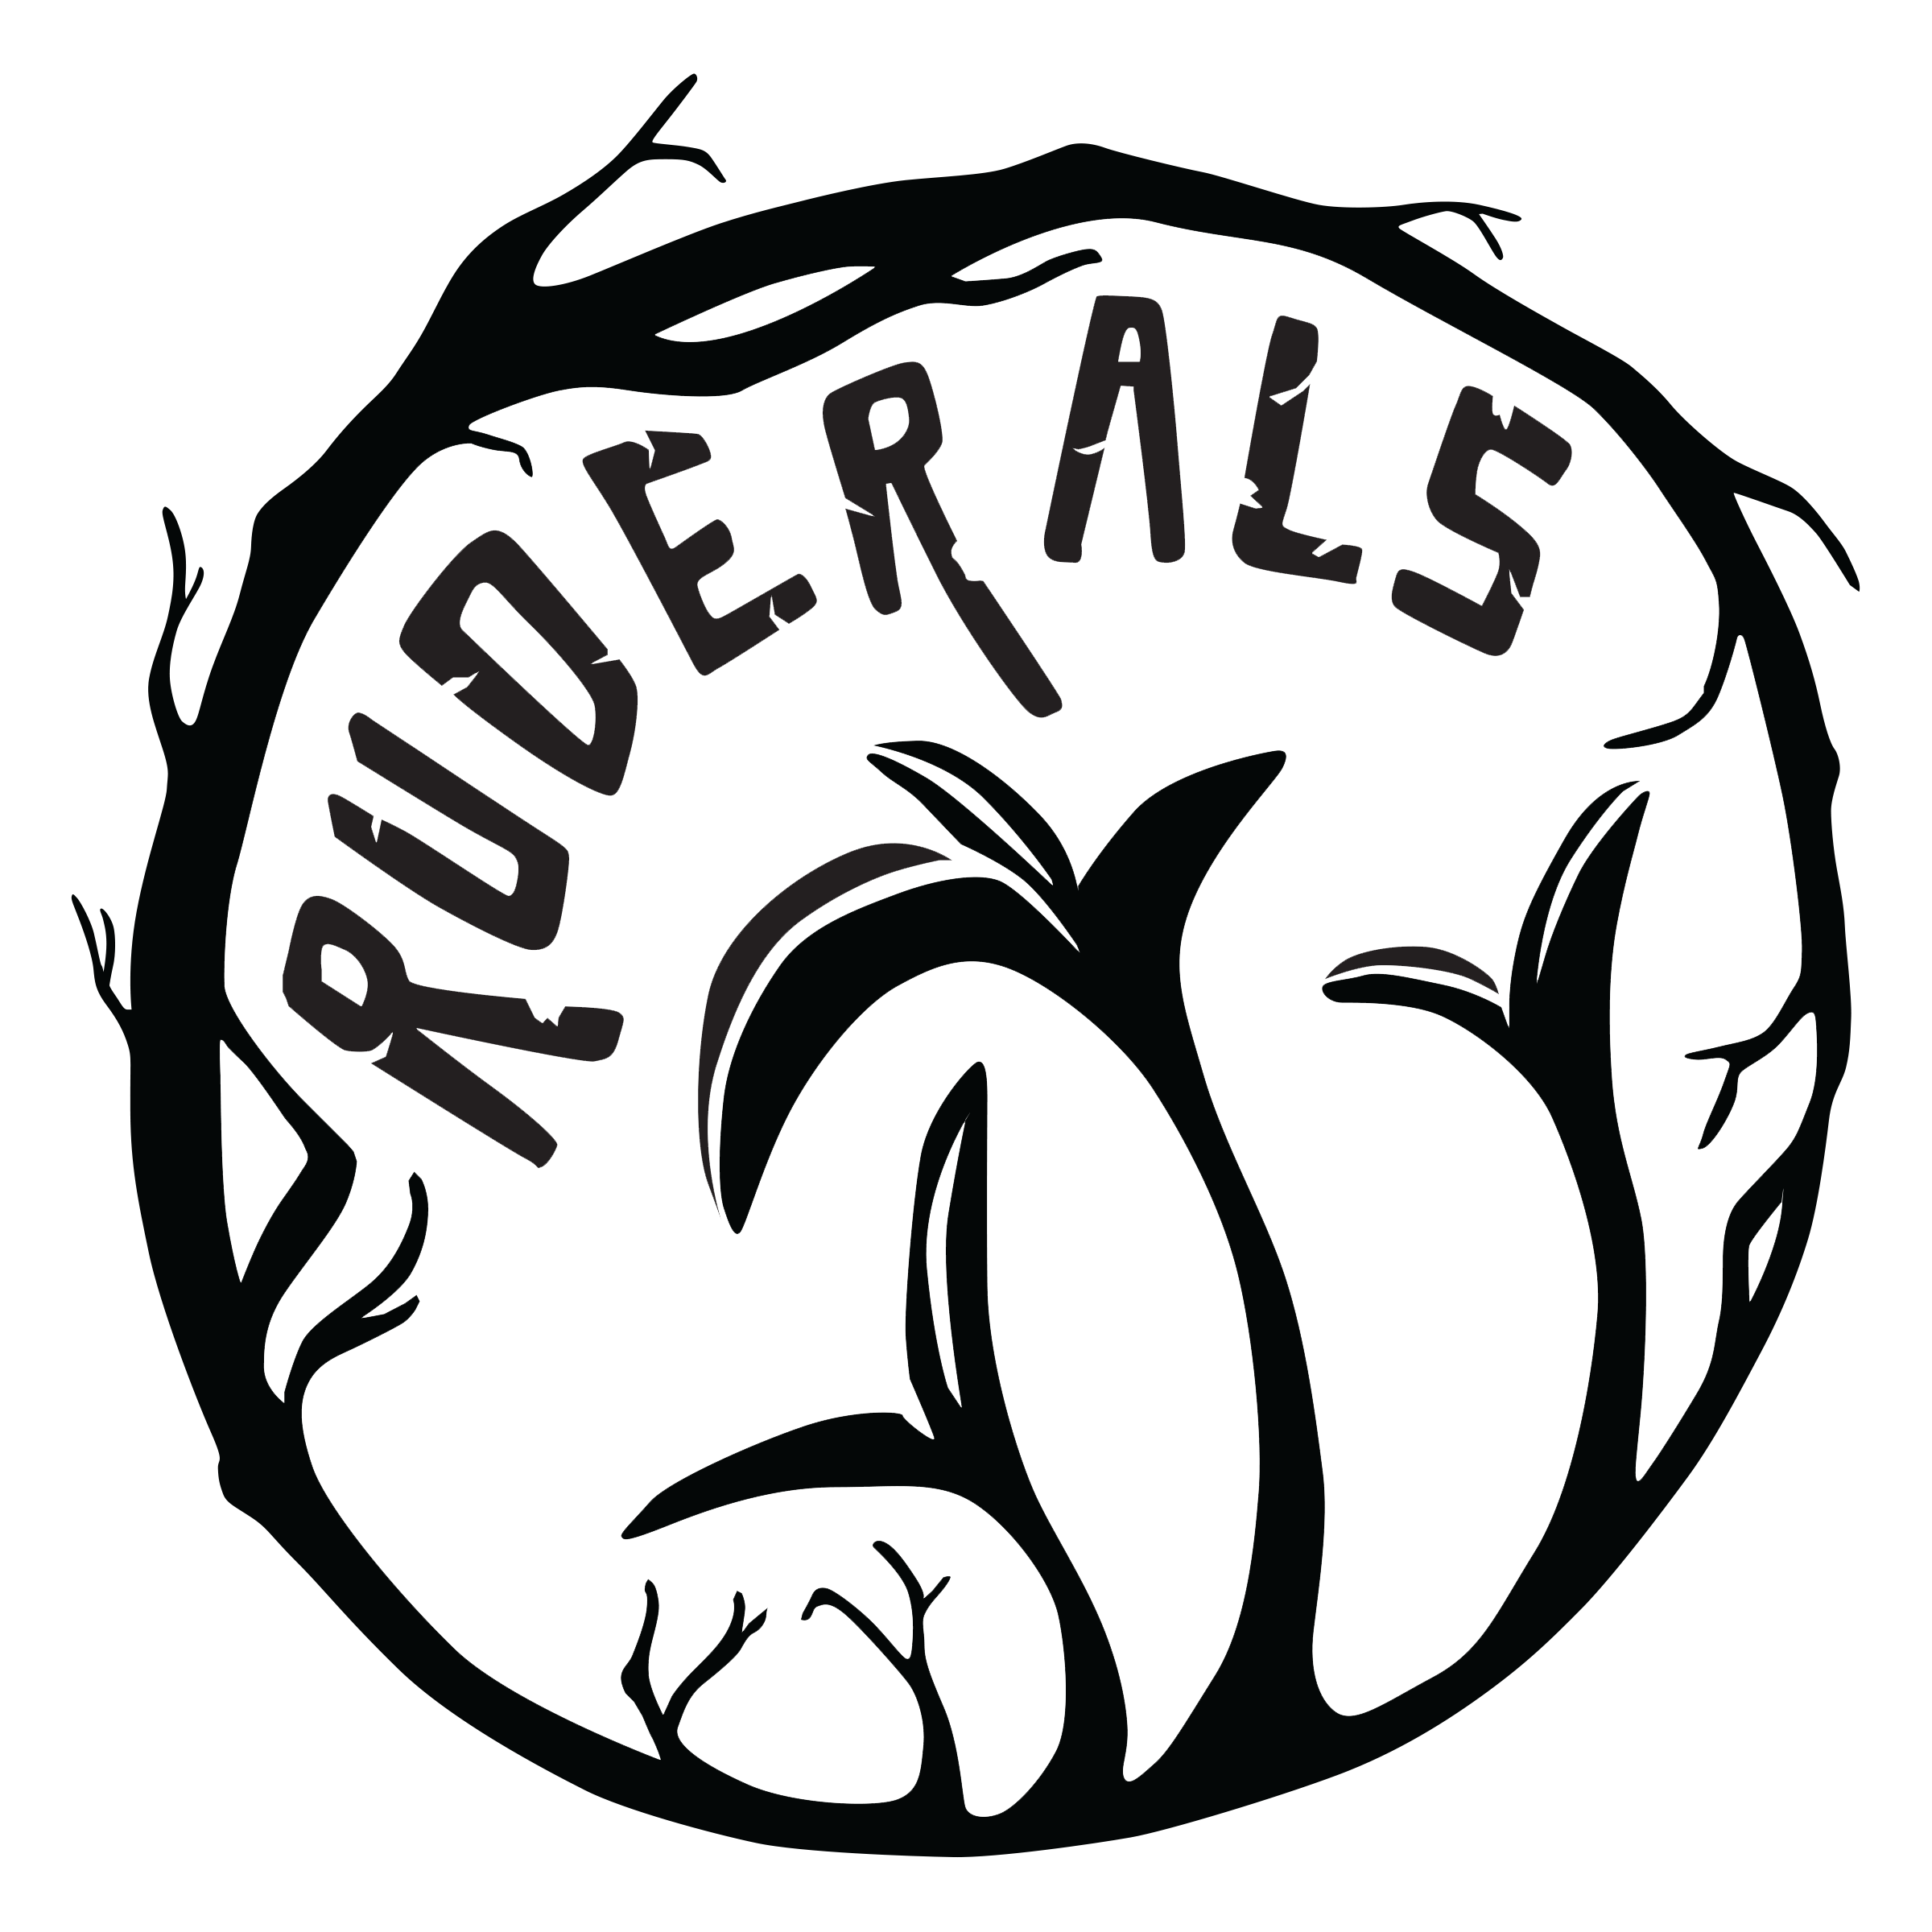 Logo for Ruderals.